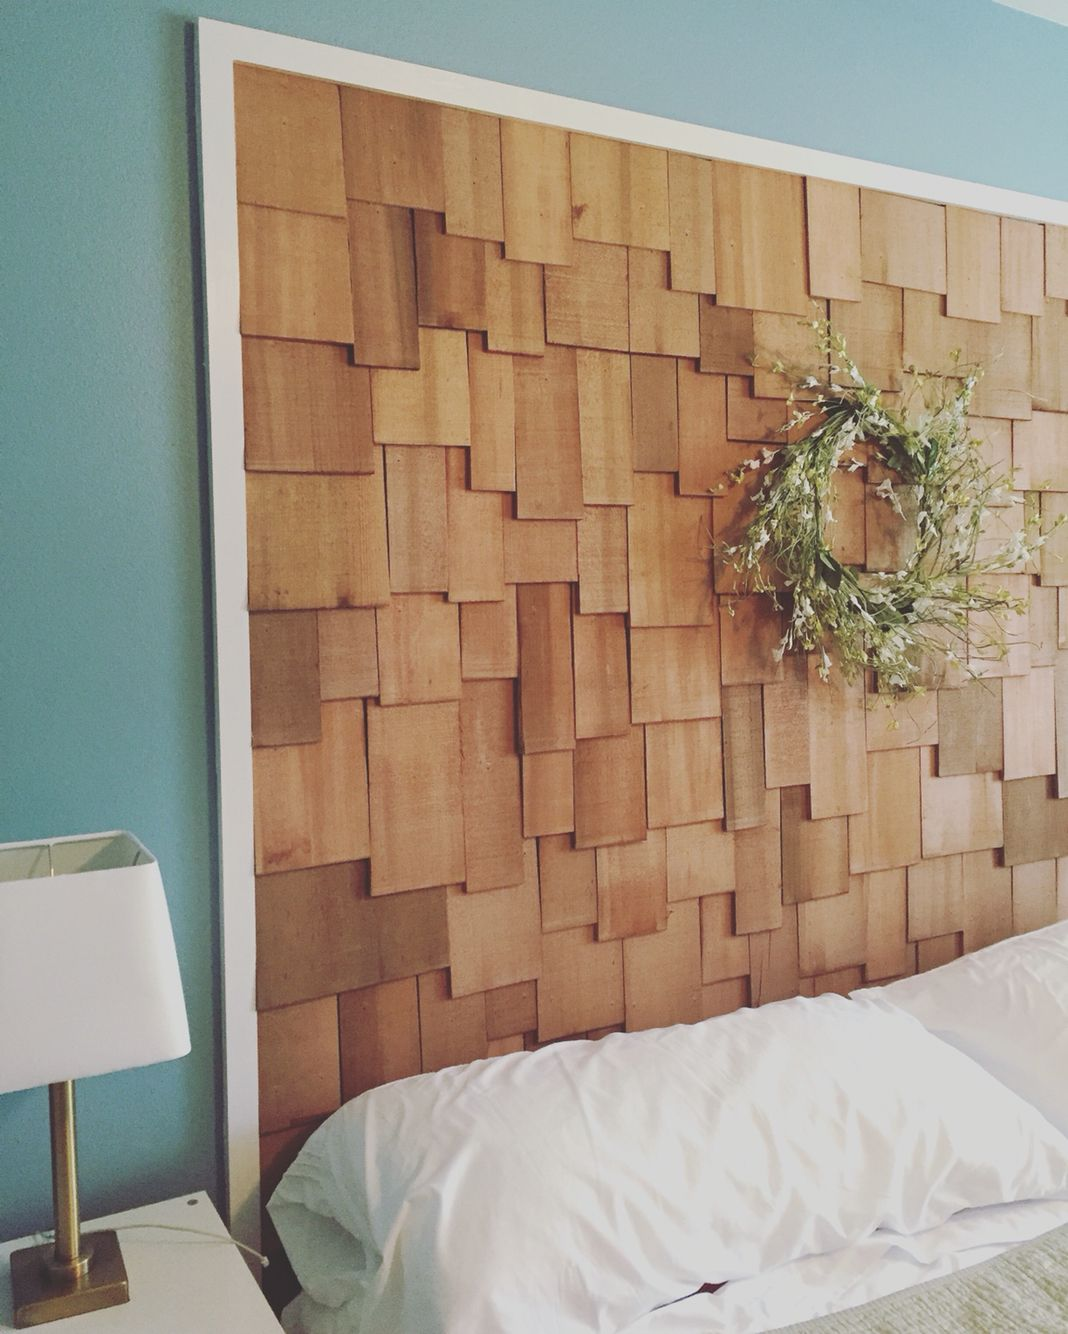 Best Our Bedroom Headboard Cedar Shakes With A White Border 400 x 300